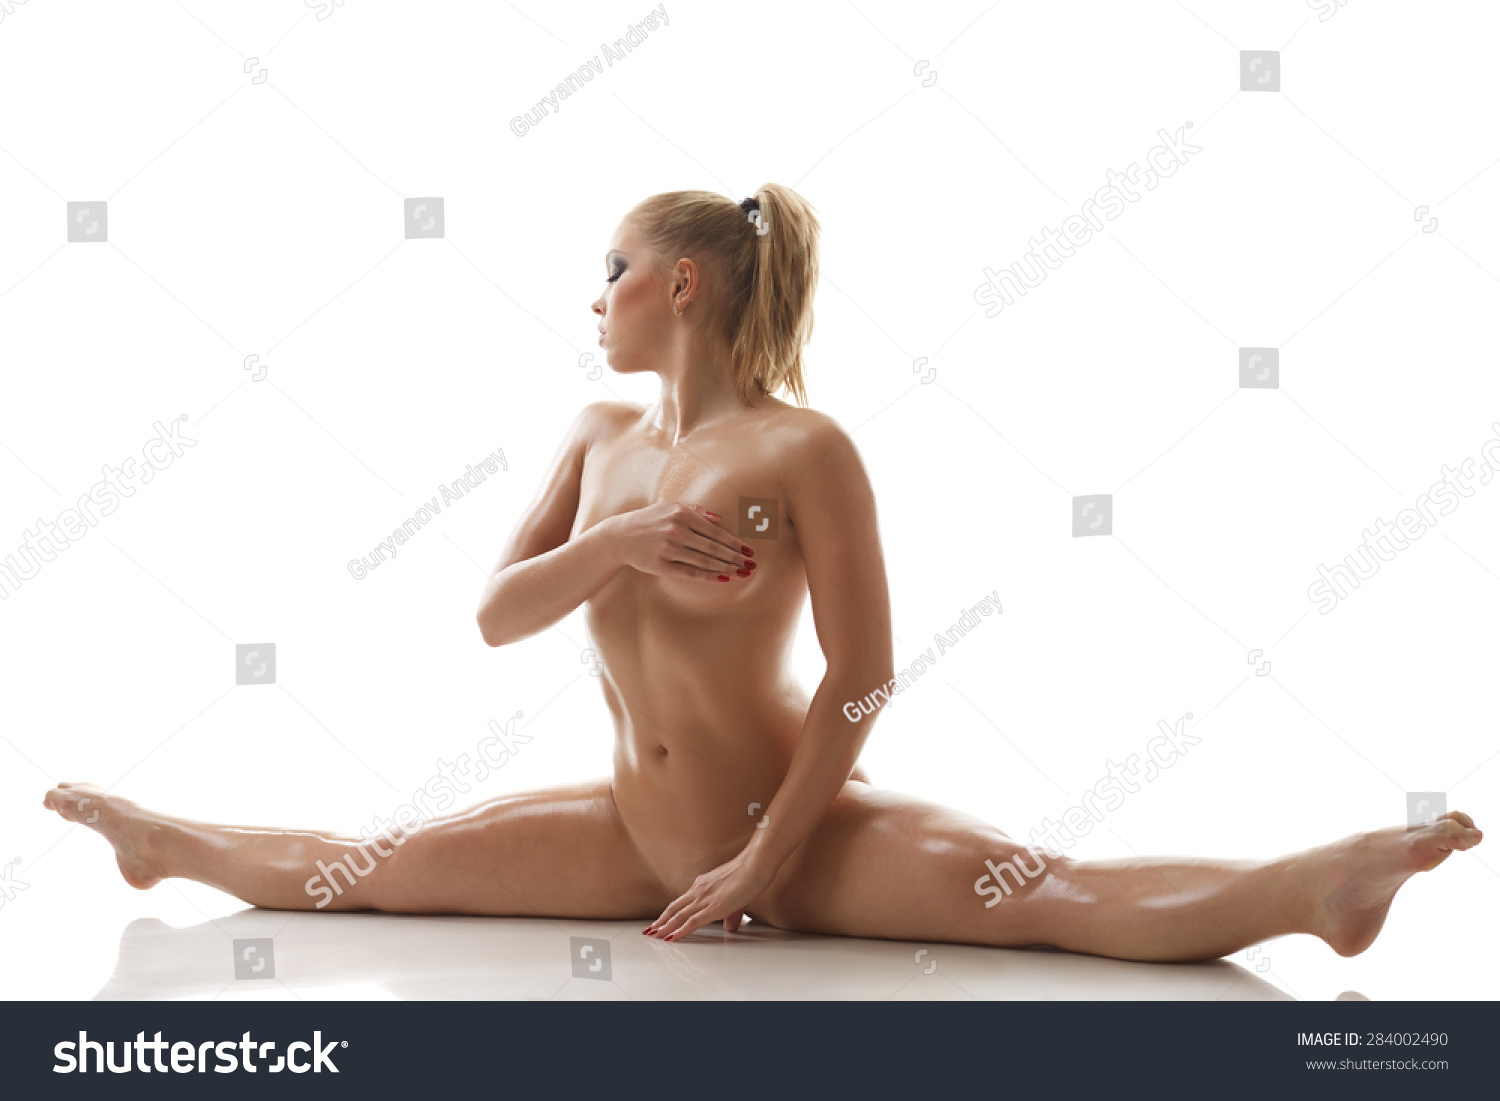 naked girls doing splits images